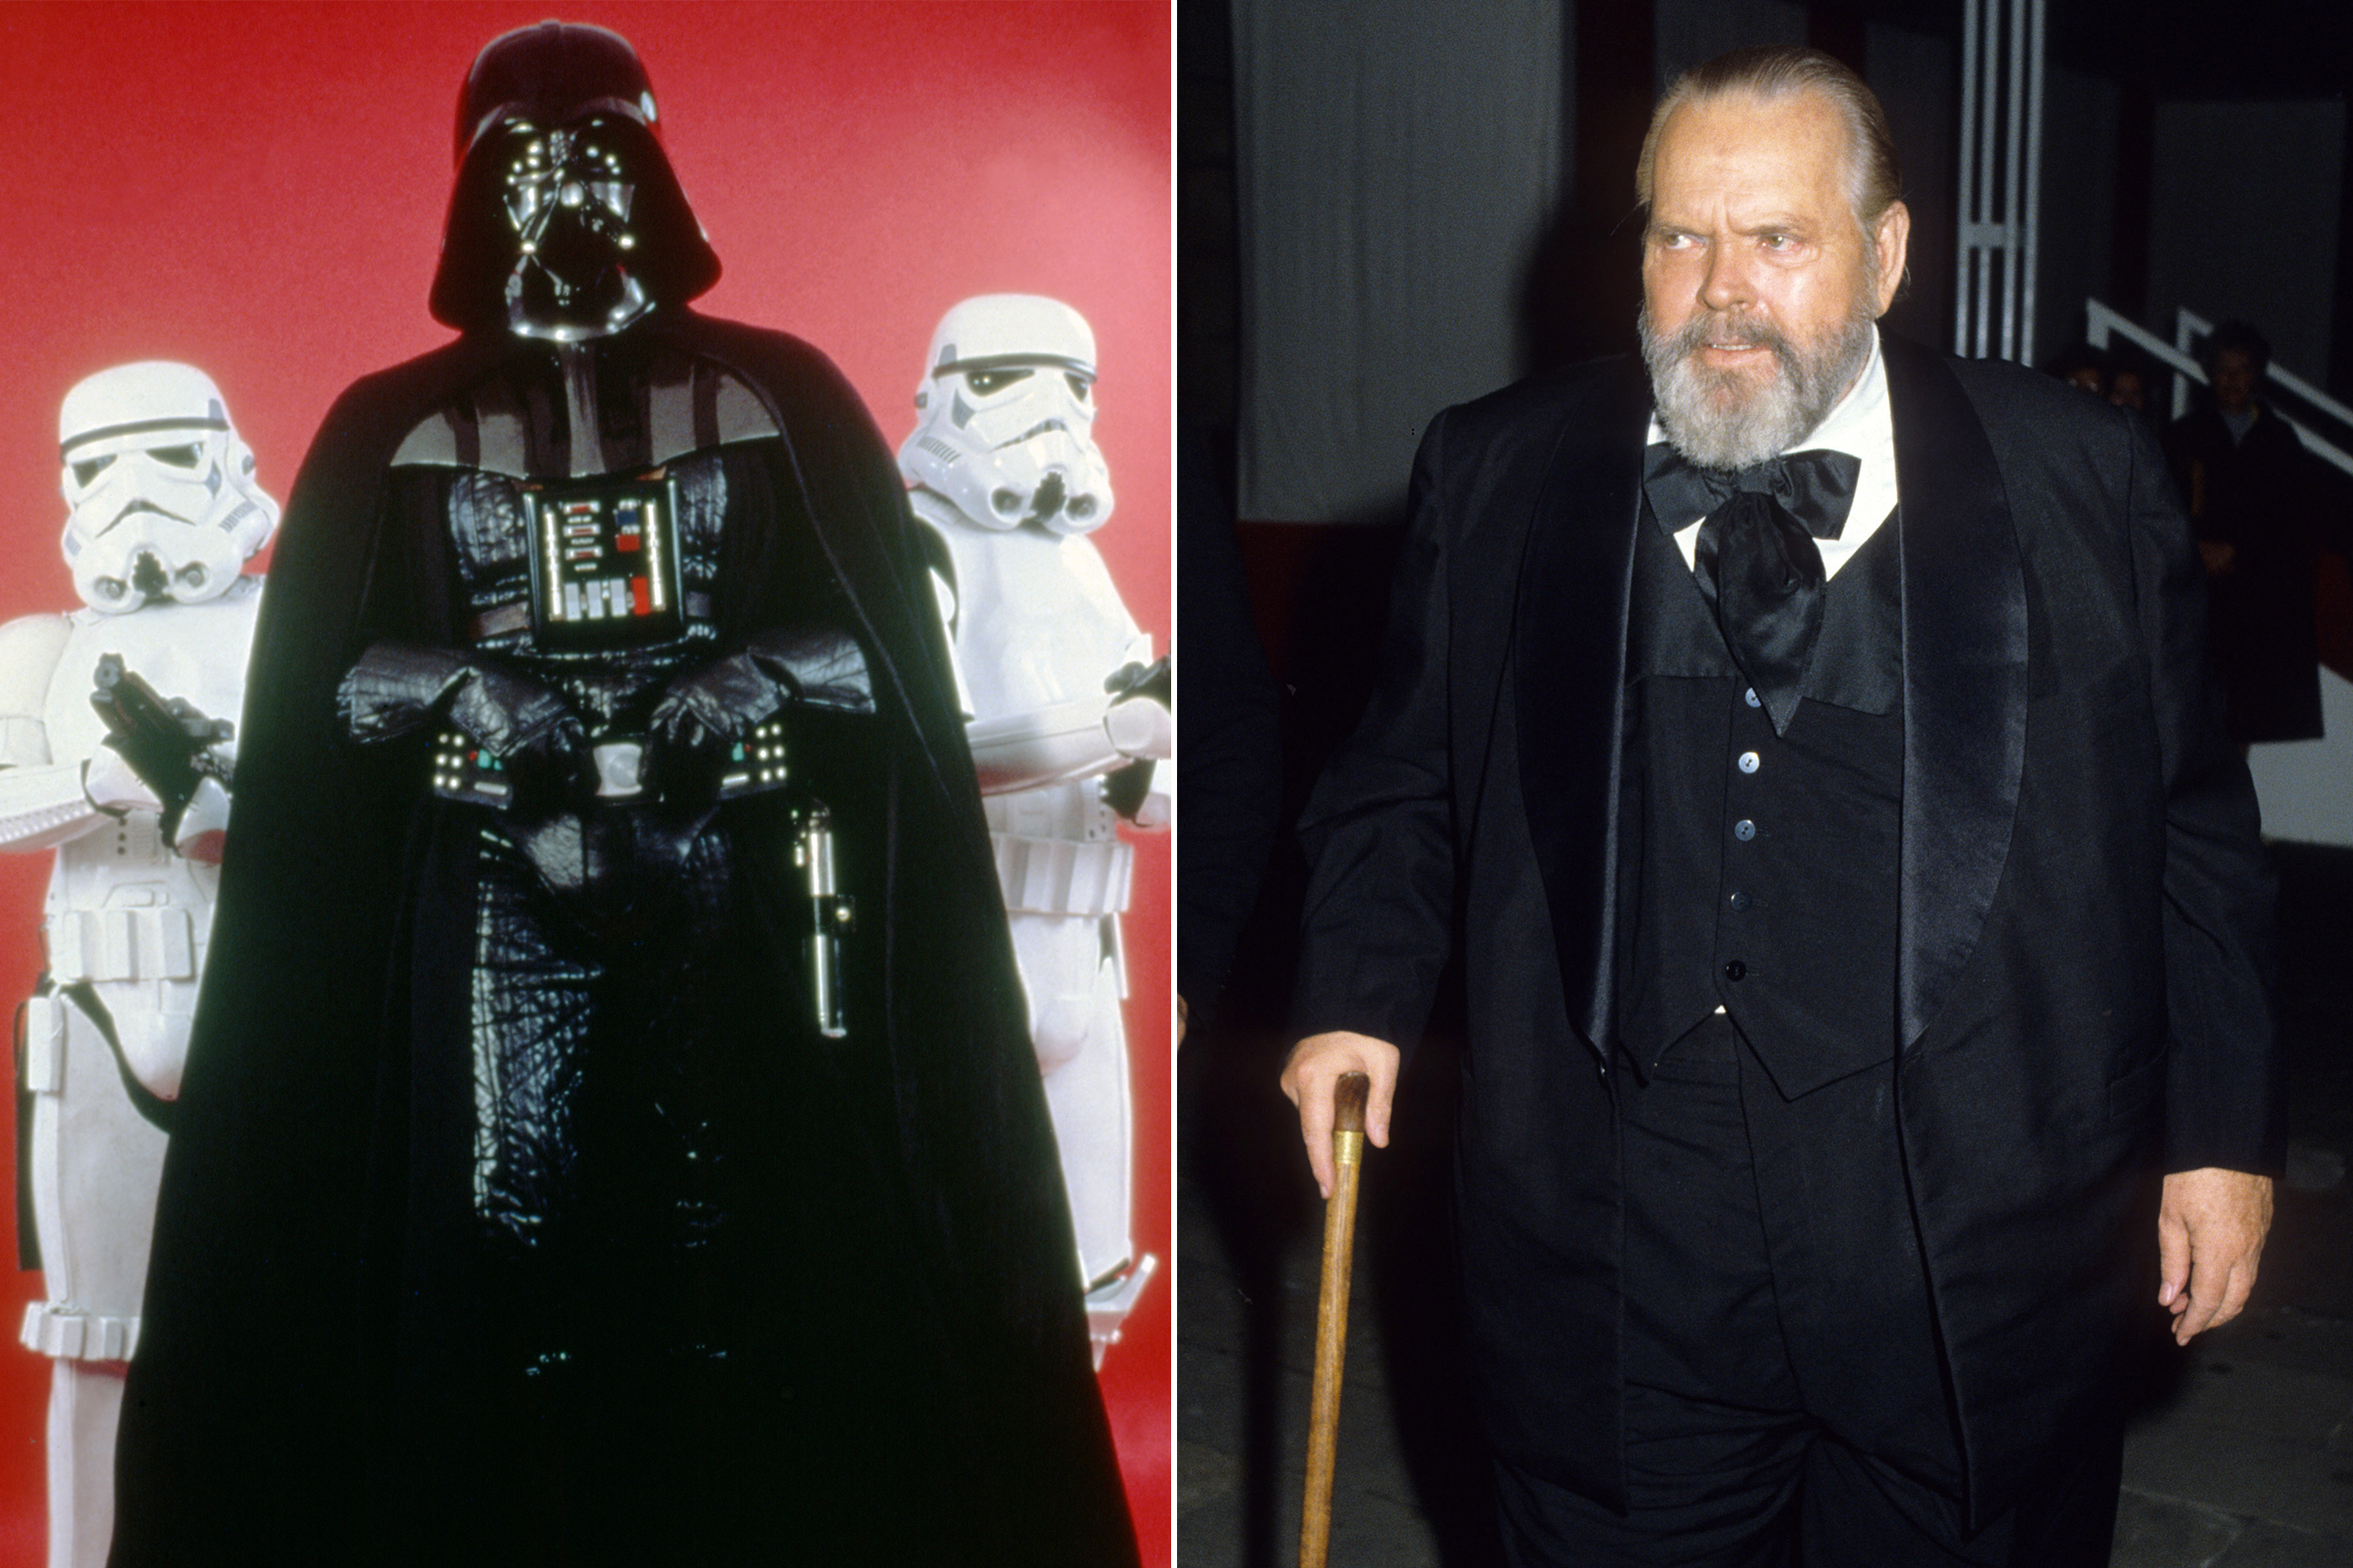 Orson Welles was almost cast as Darth Vader in Star Wars